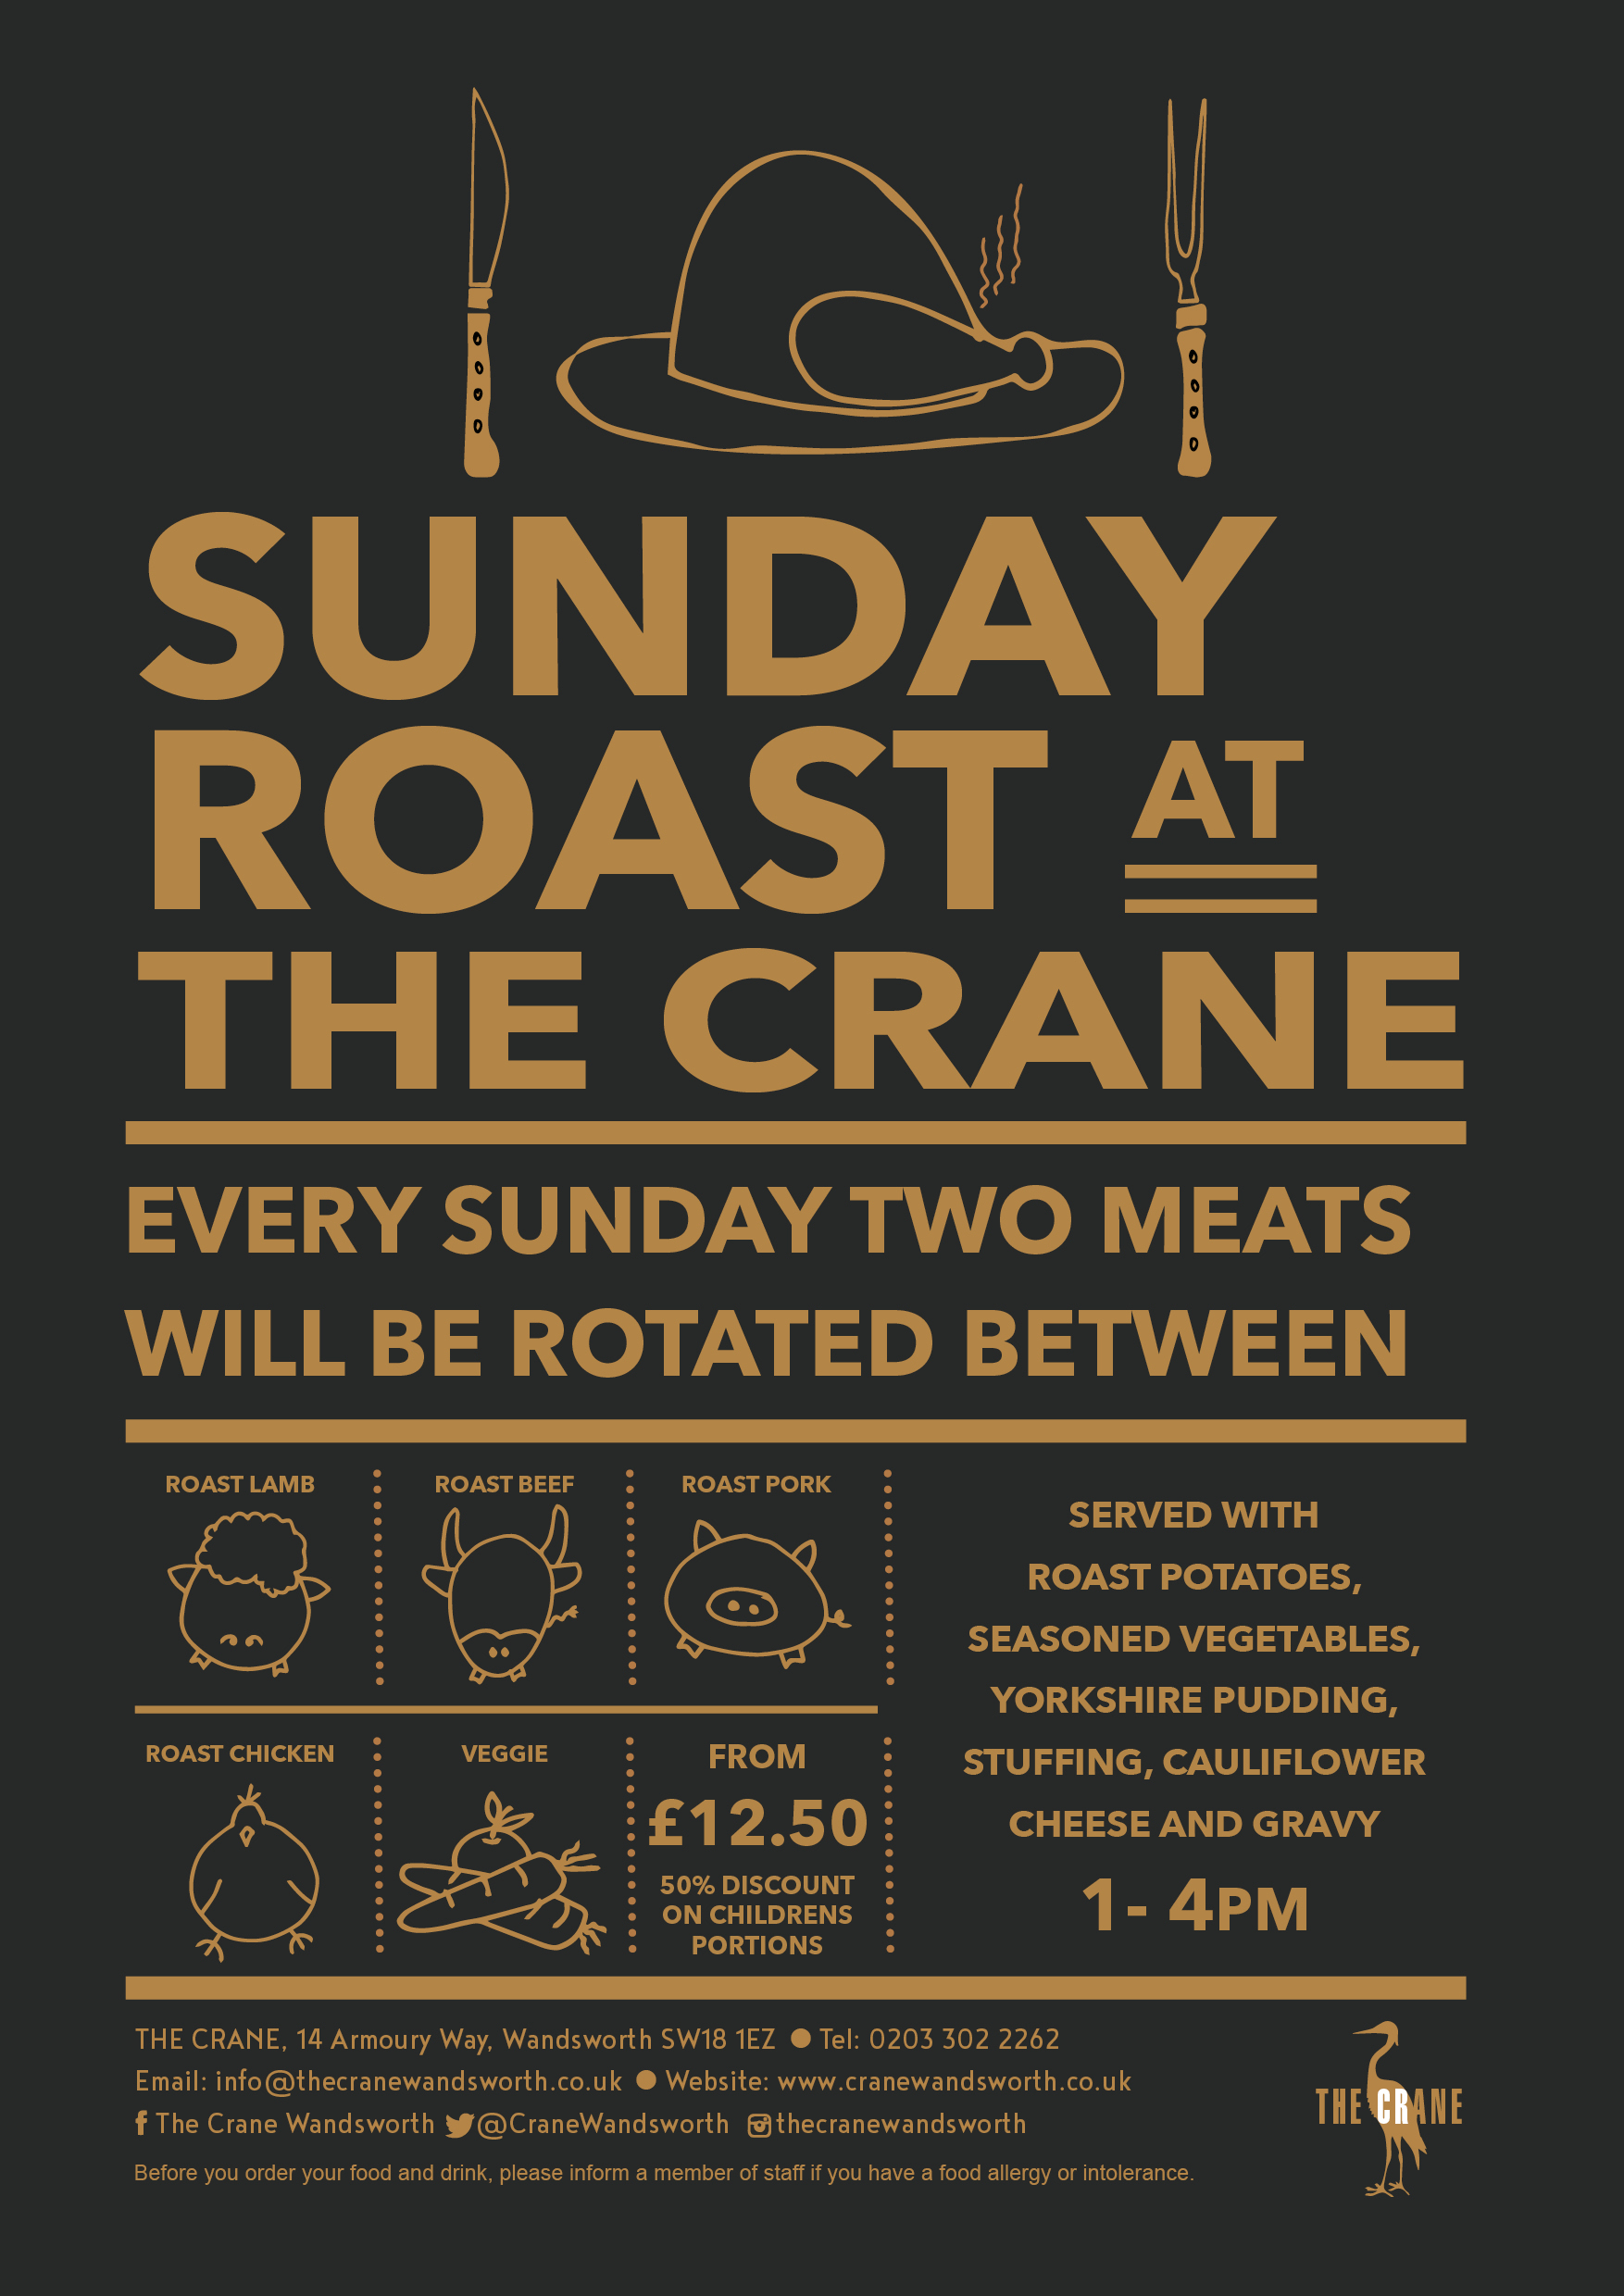 Crane Wandsworth sunday Roast poster Nov